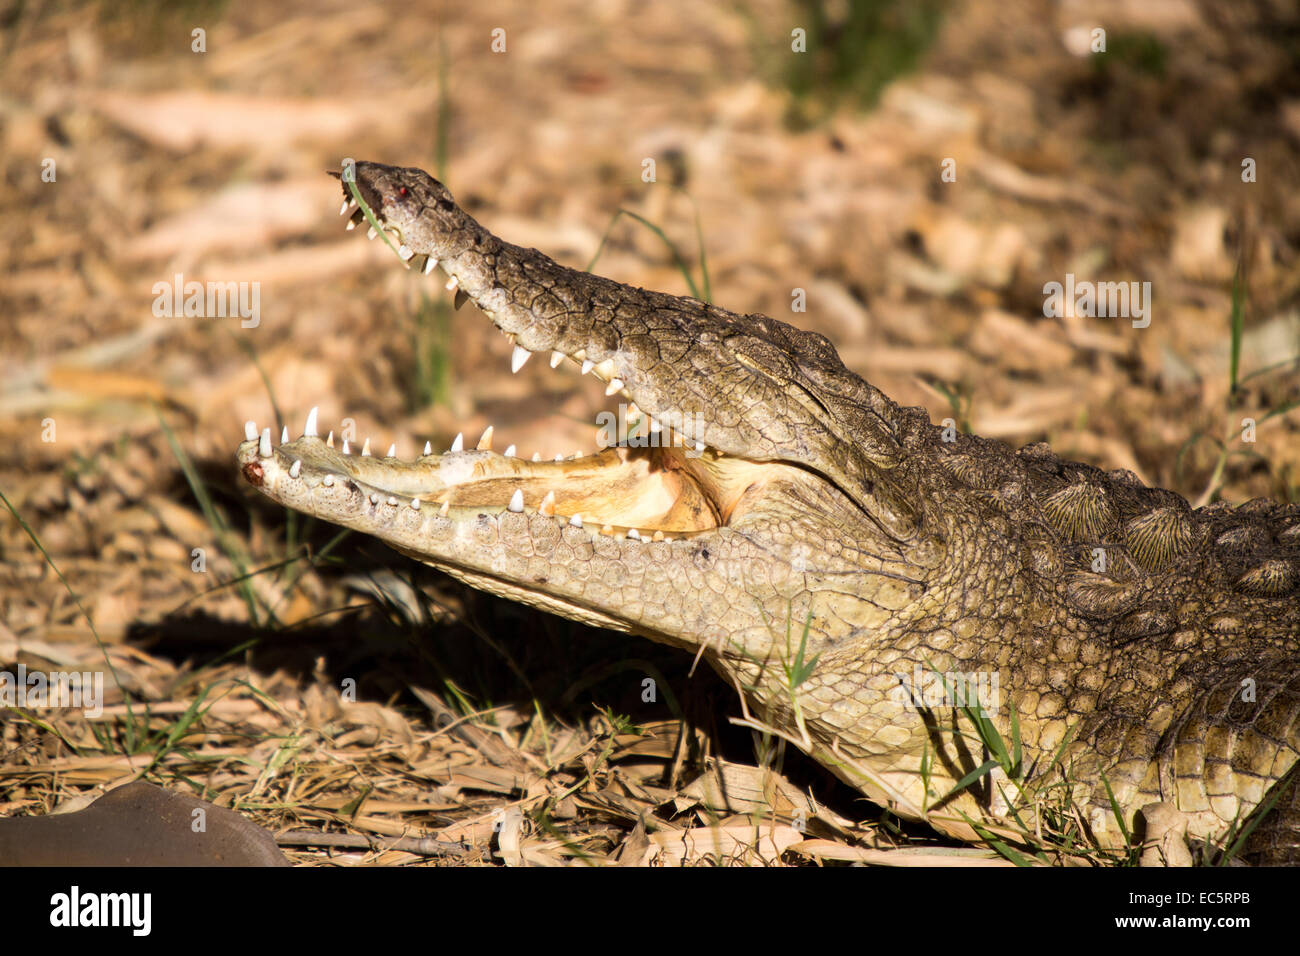 April 28 2013 Crocodile In The Lion And Chitaah Park In Harare In